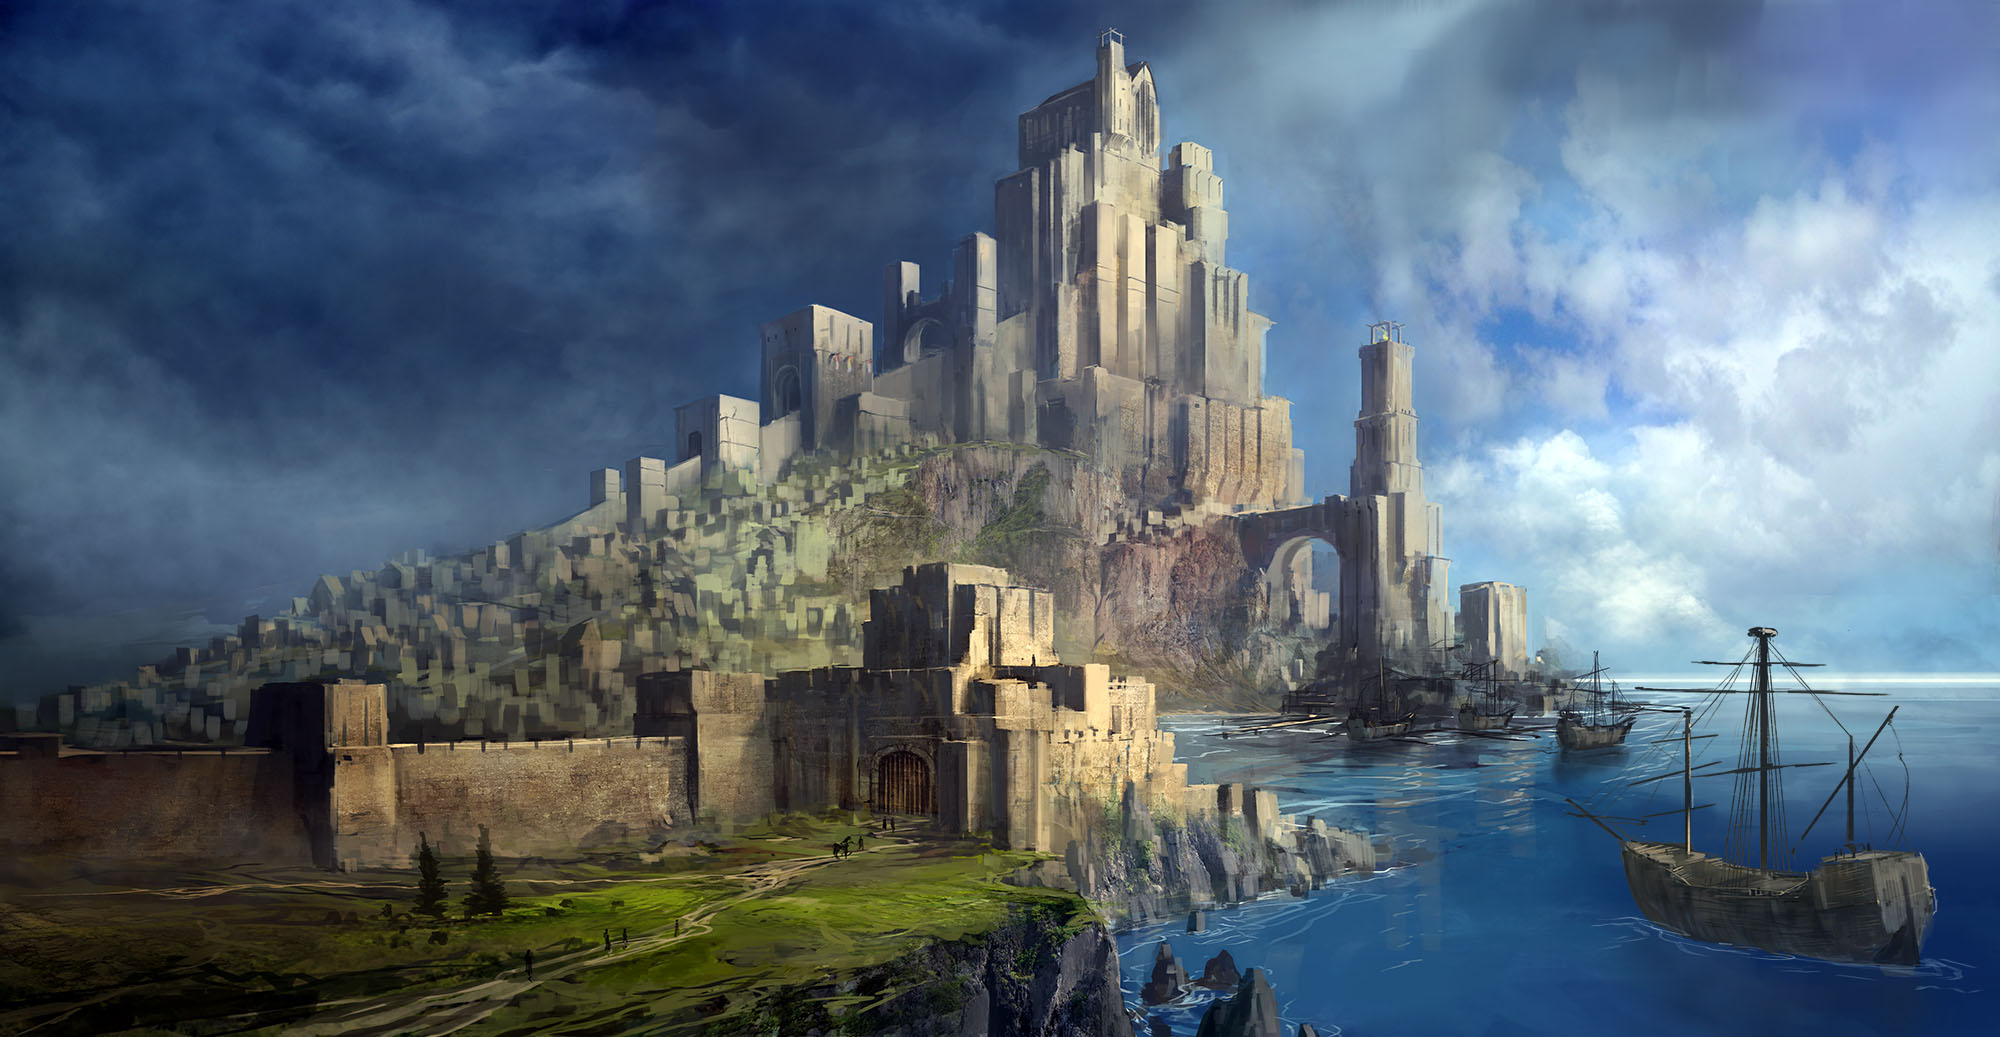 General 2000x1037 digital art fantasy art castle sailing ship sea clouds cliff monastery arch Final Fantasy video games wall